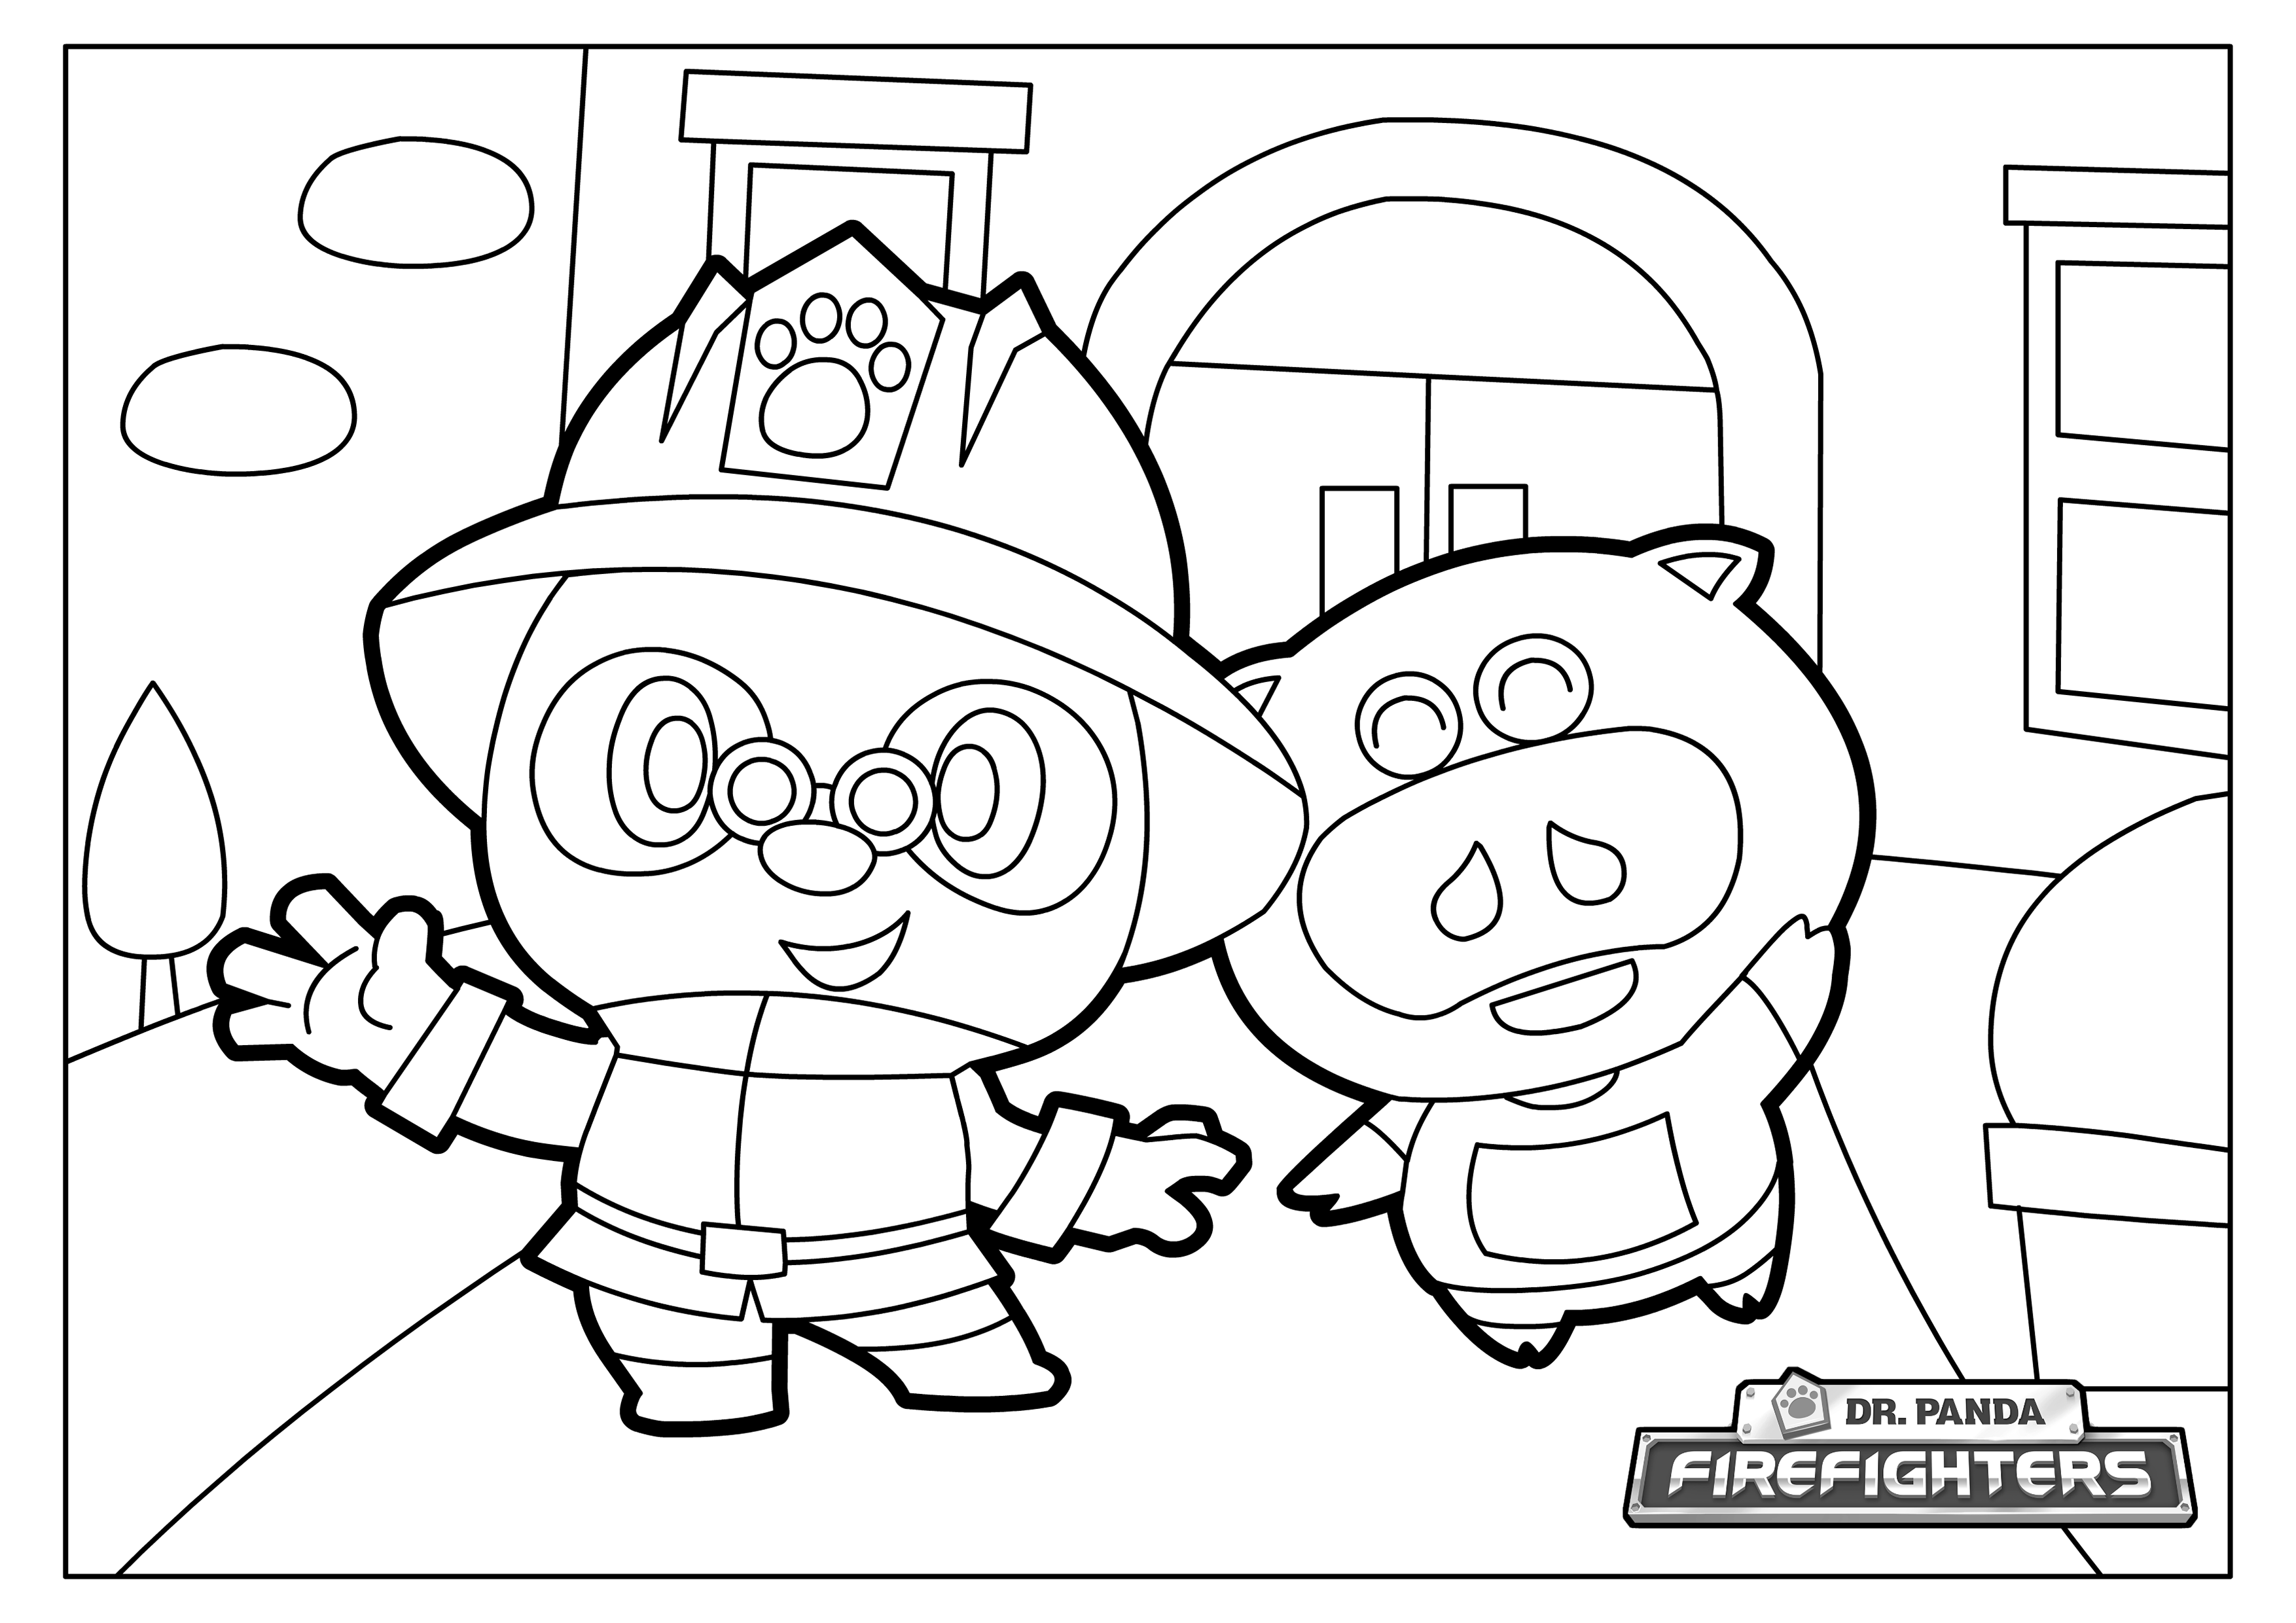 We Have Some Dr Panda Firefighters Coloring Pages For You To Print And Enjoy With Your Kids Fill Them In With Your Best And Brightest Colors Then P Kleuren [ 2480 x 3508 Pixel ]